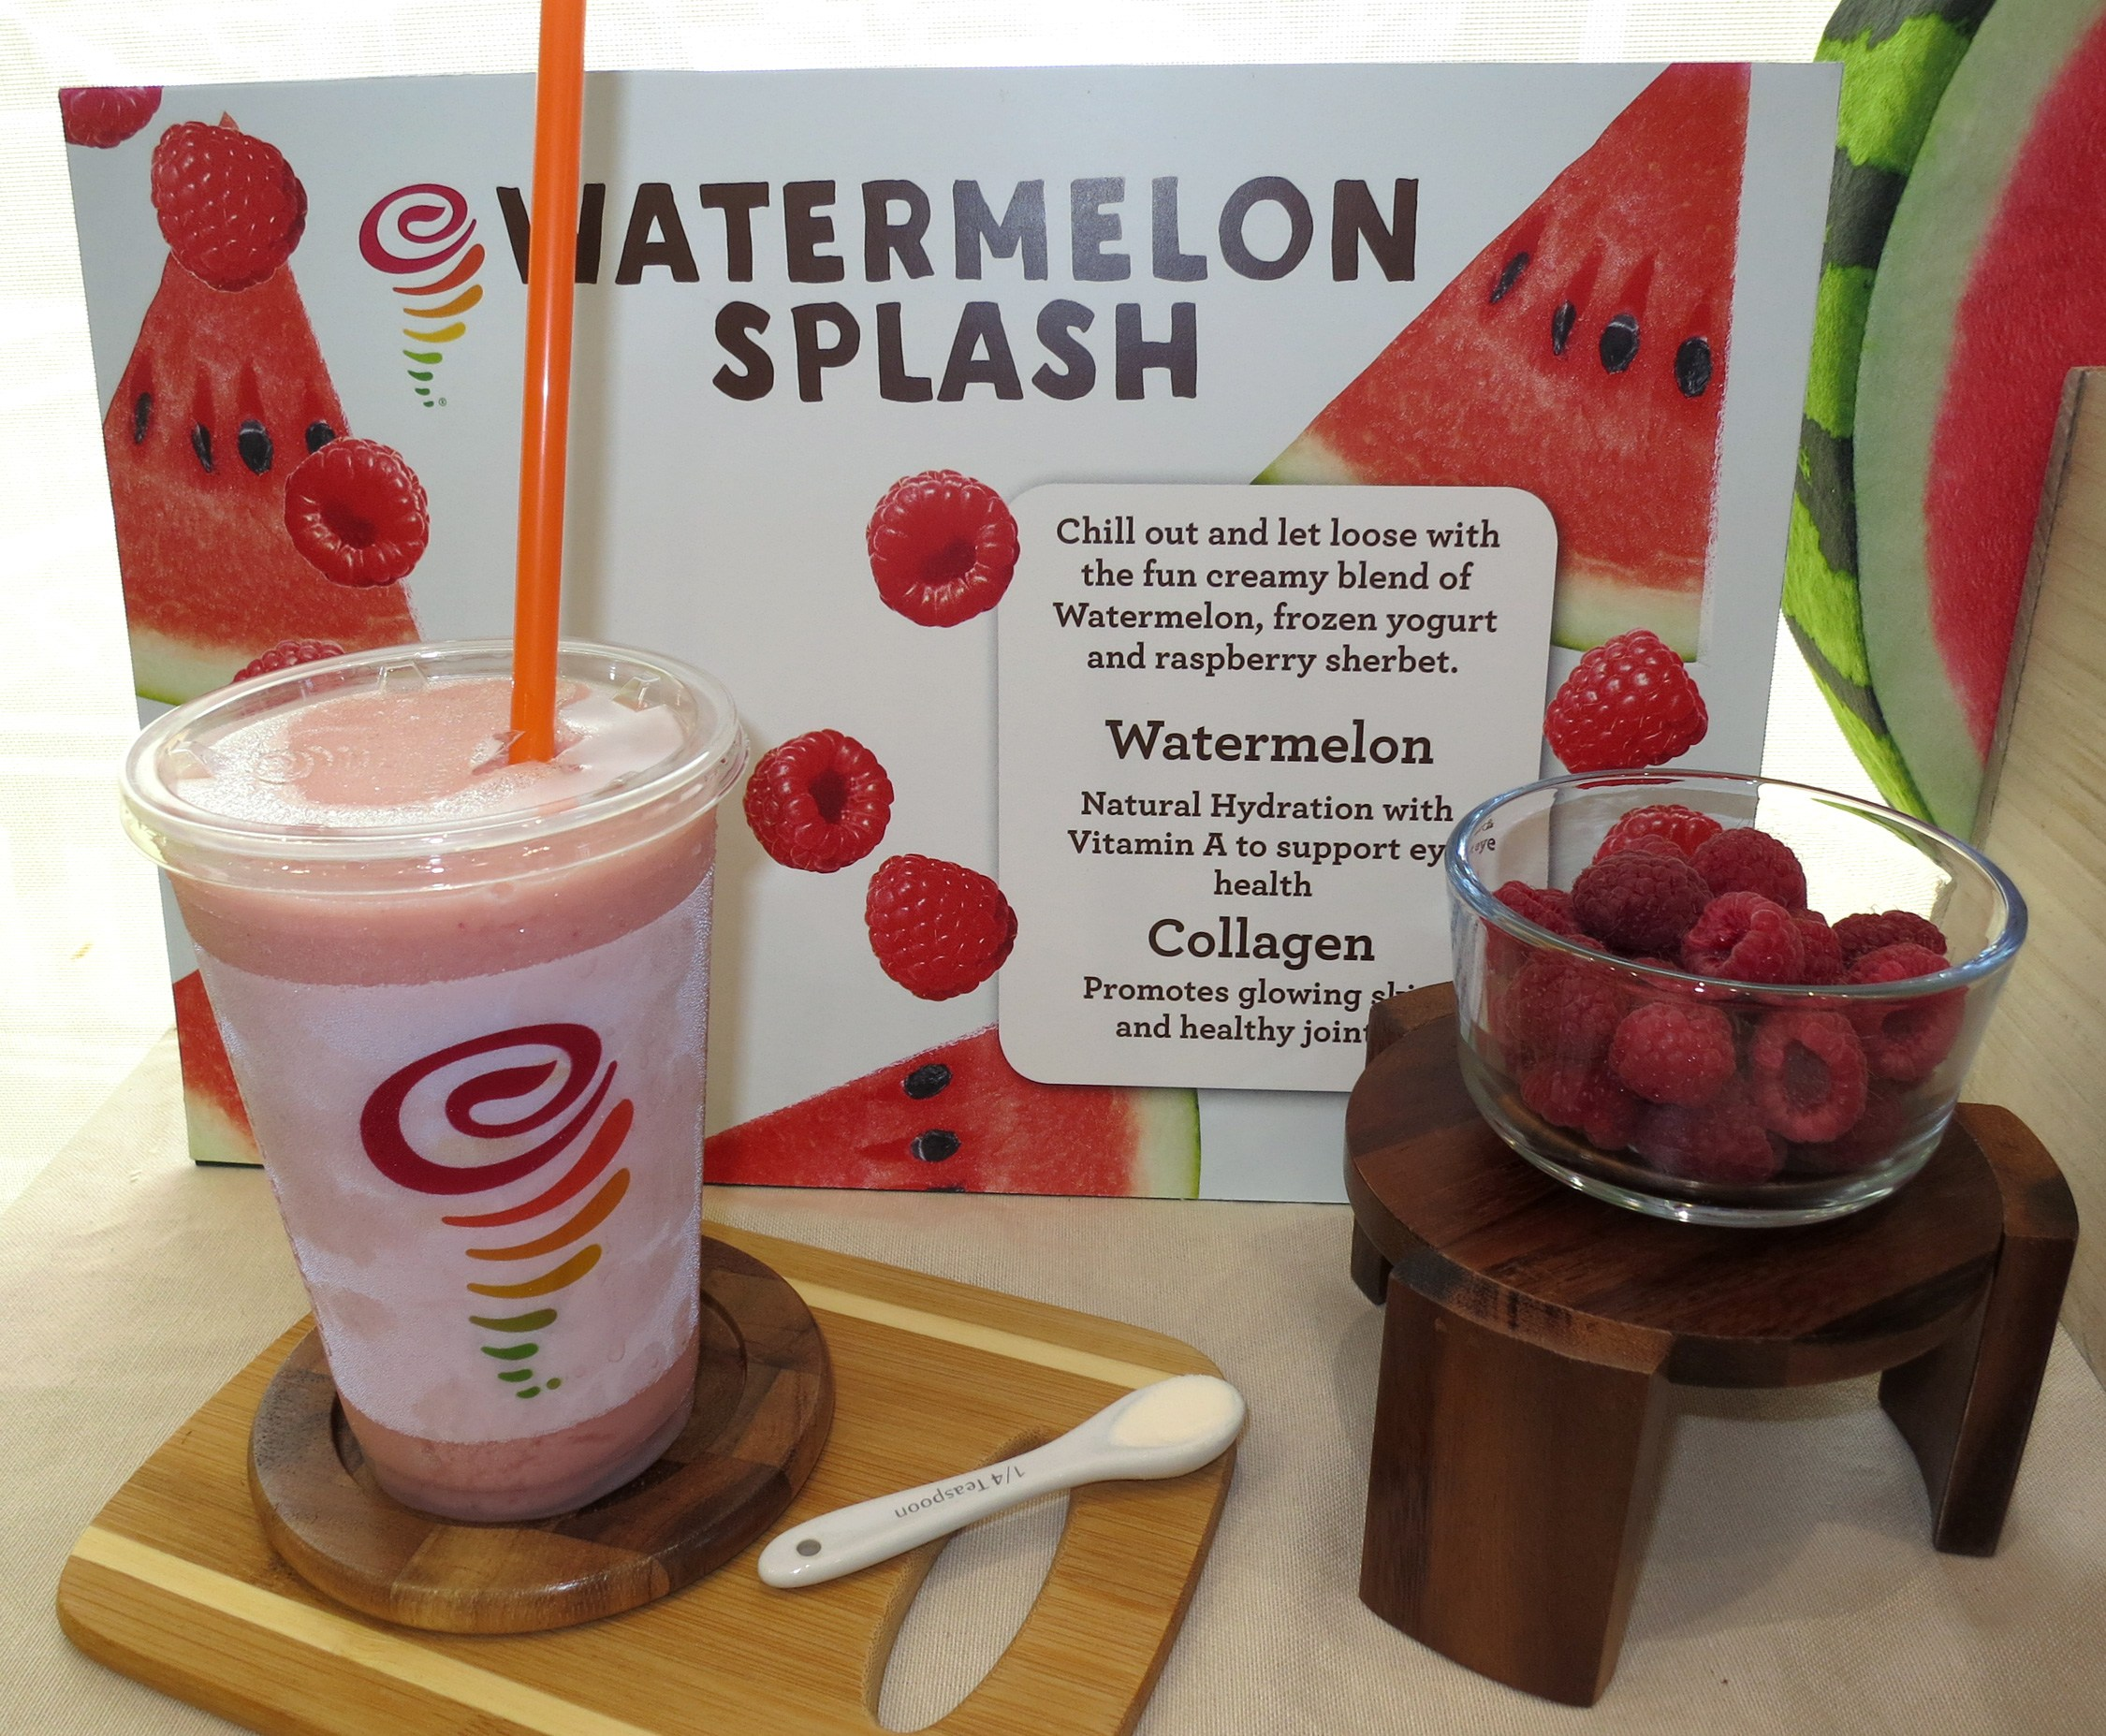 JJ Watermelon Splash